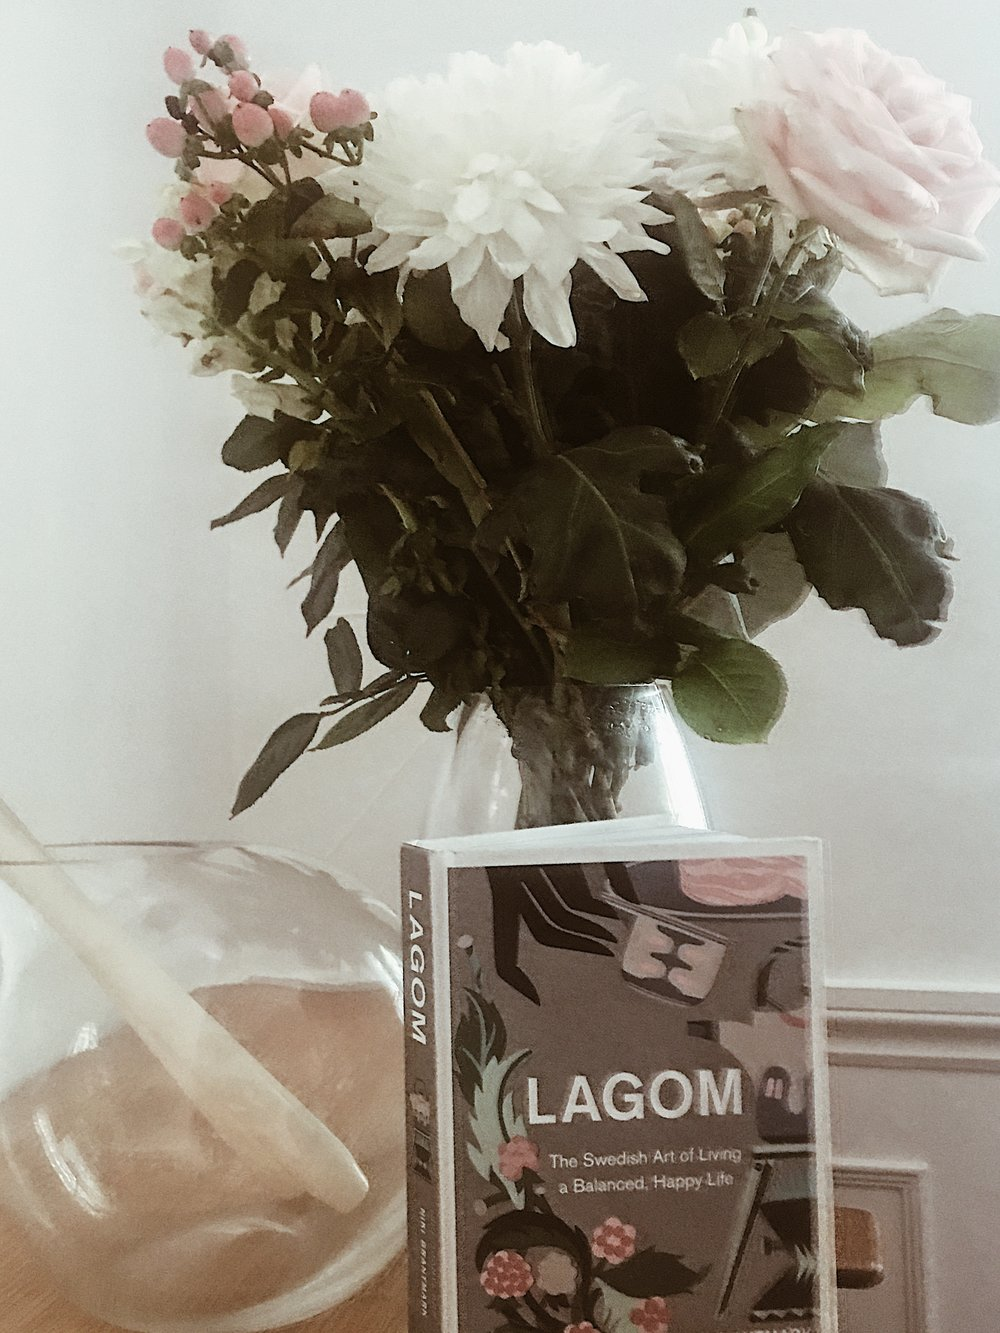 - 'Lagom' - a Swedish word loosely meaning 'just the right amount, not too little, not too much, just right'